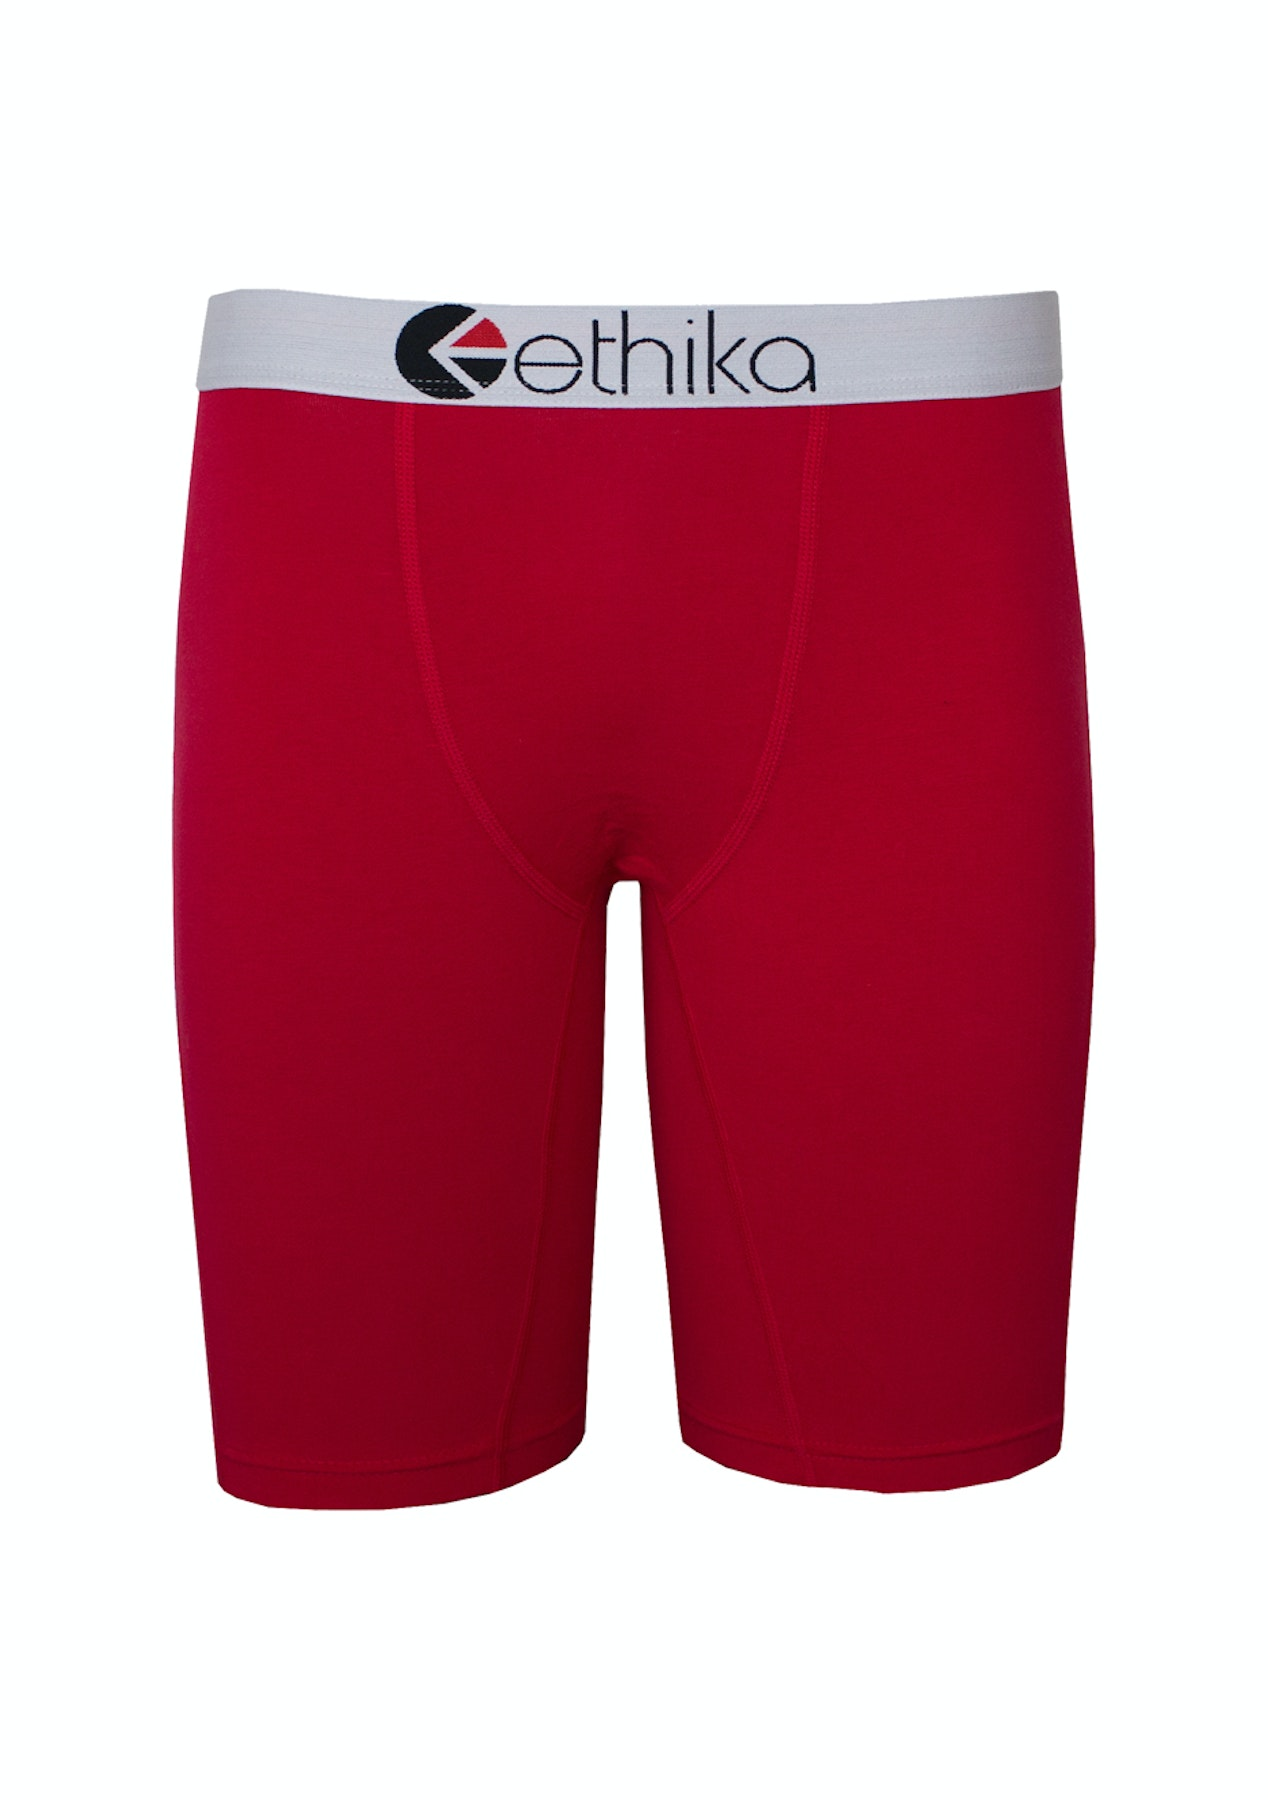 af6a527127 Ethika Mens - Red Staple Solid - Free Shipping Ethika Underwear up to 55%  off - Onceit